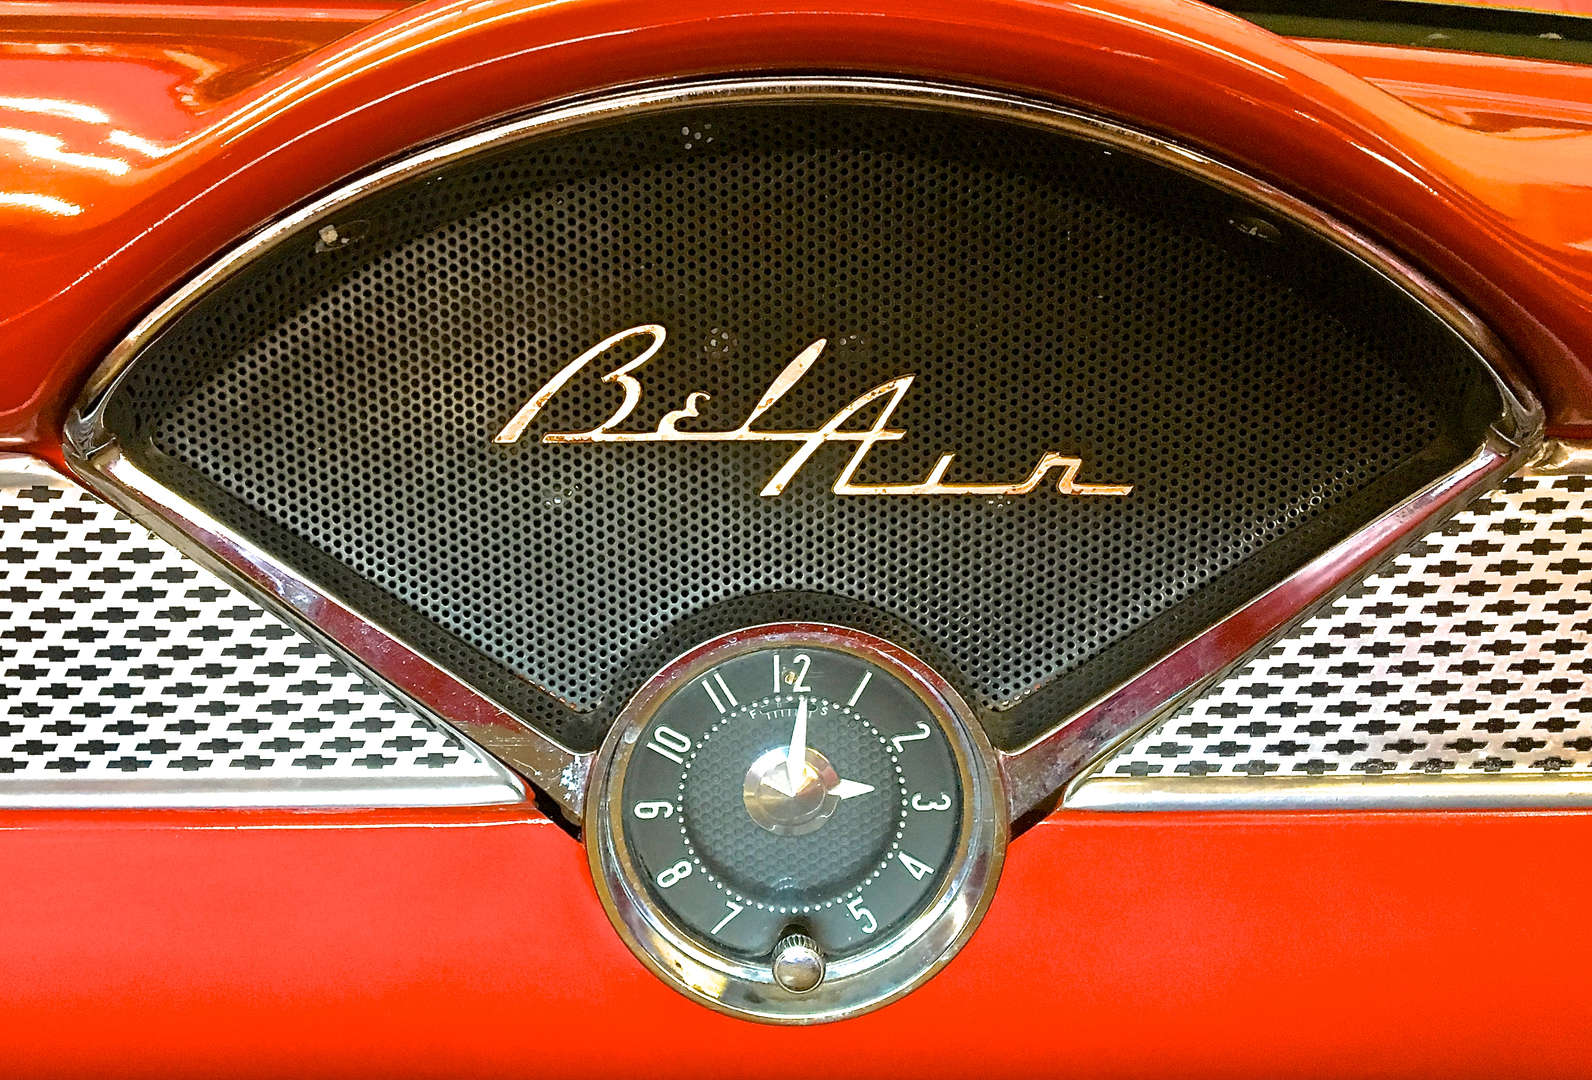 Bel Air Clock.JPG